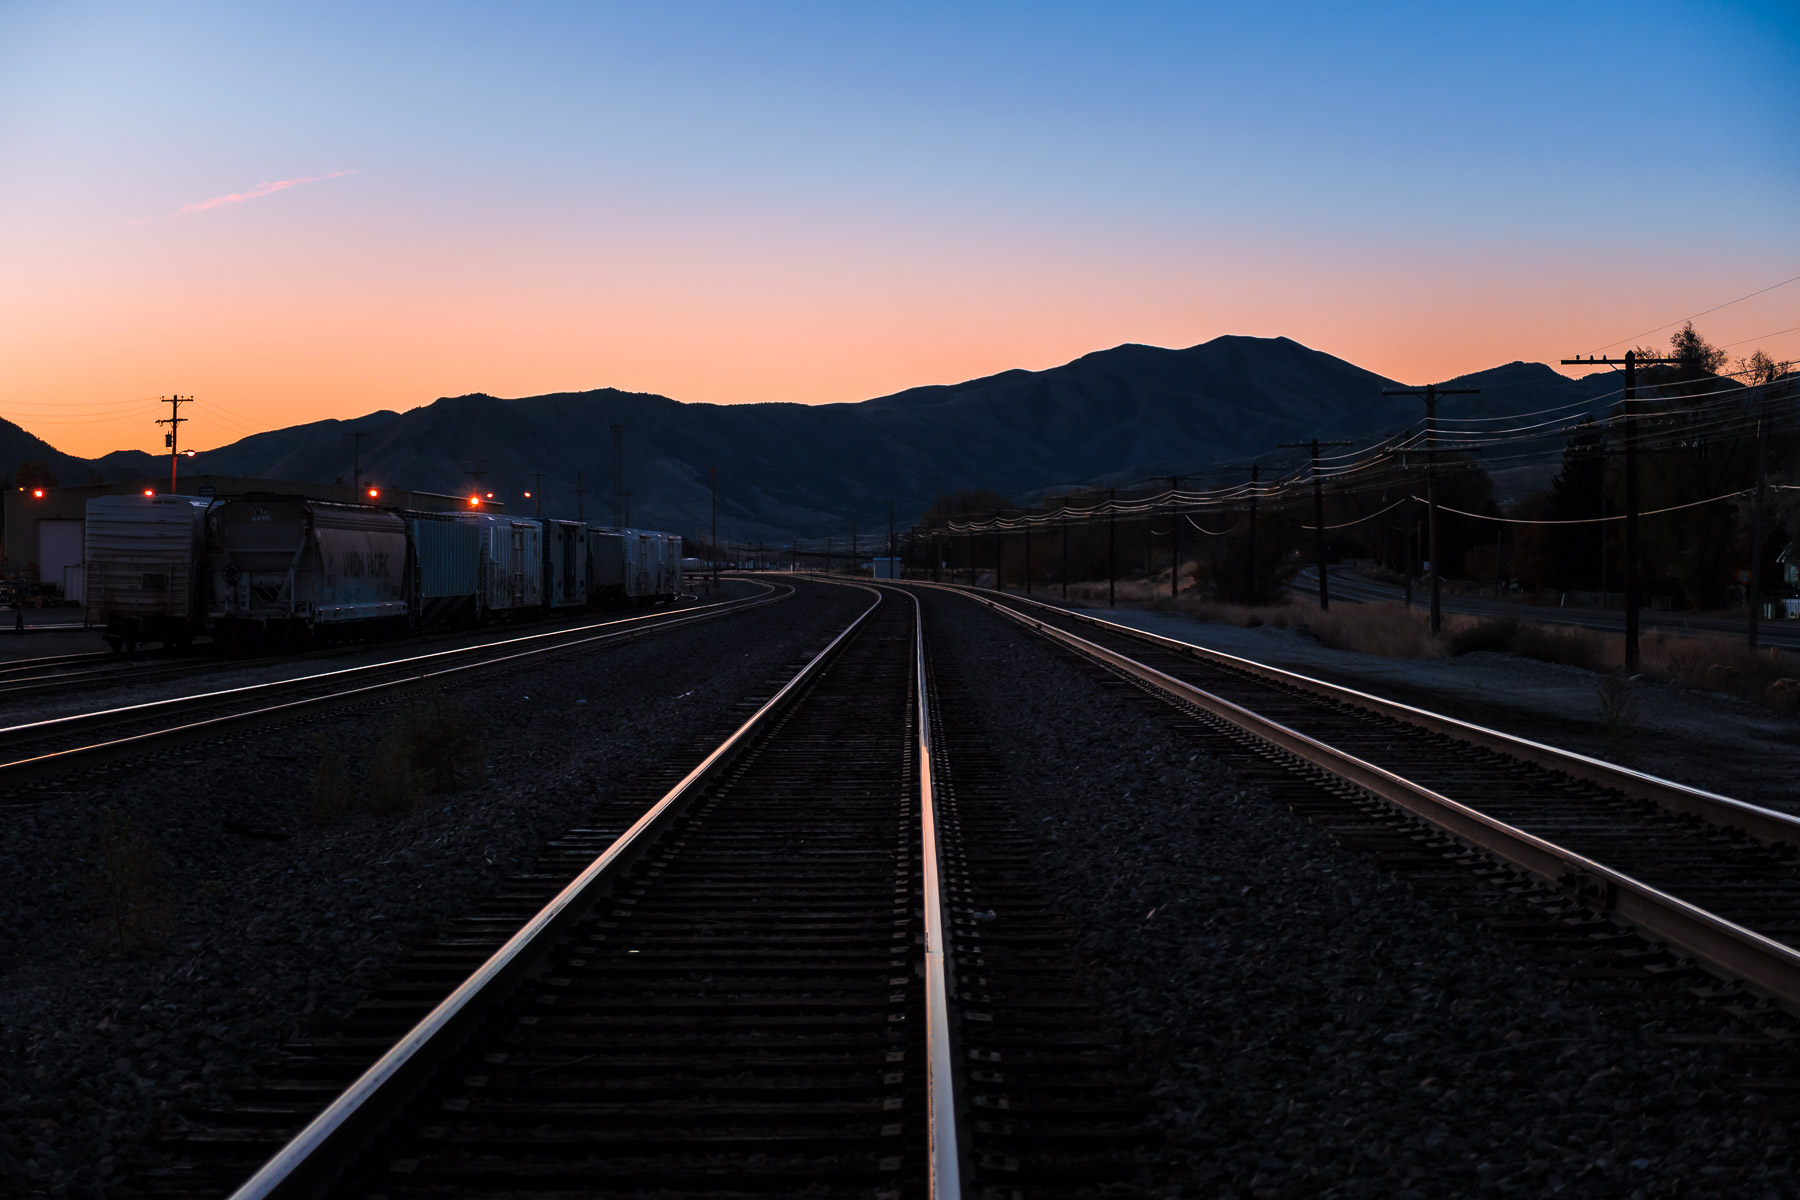 The sun begins to rise on a railyard in Pocatello, Idaho.